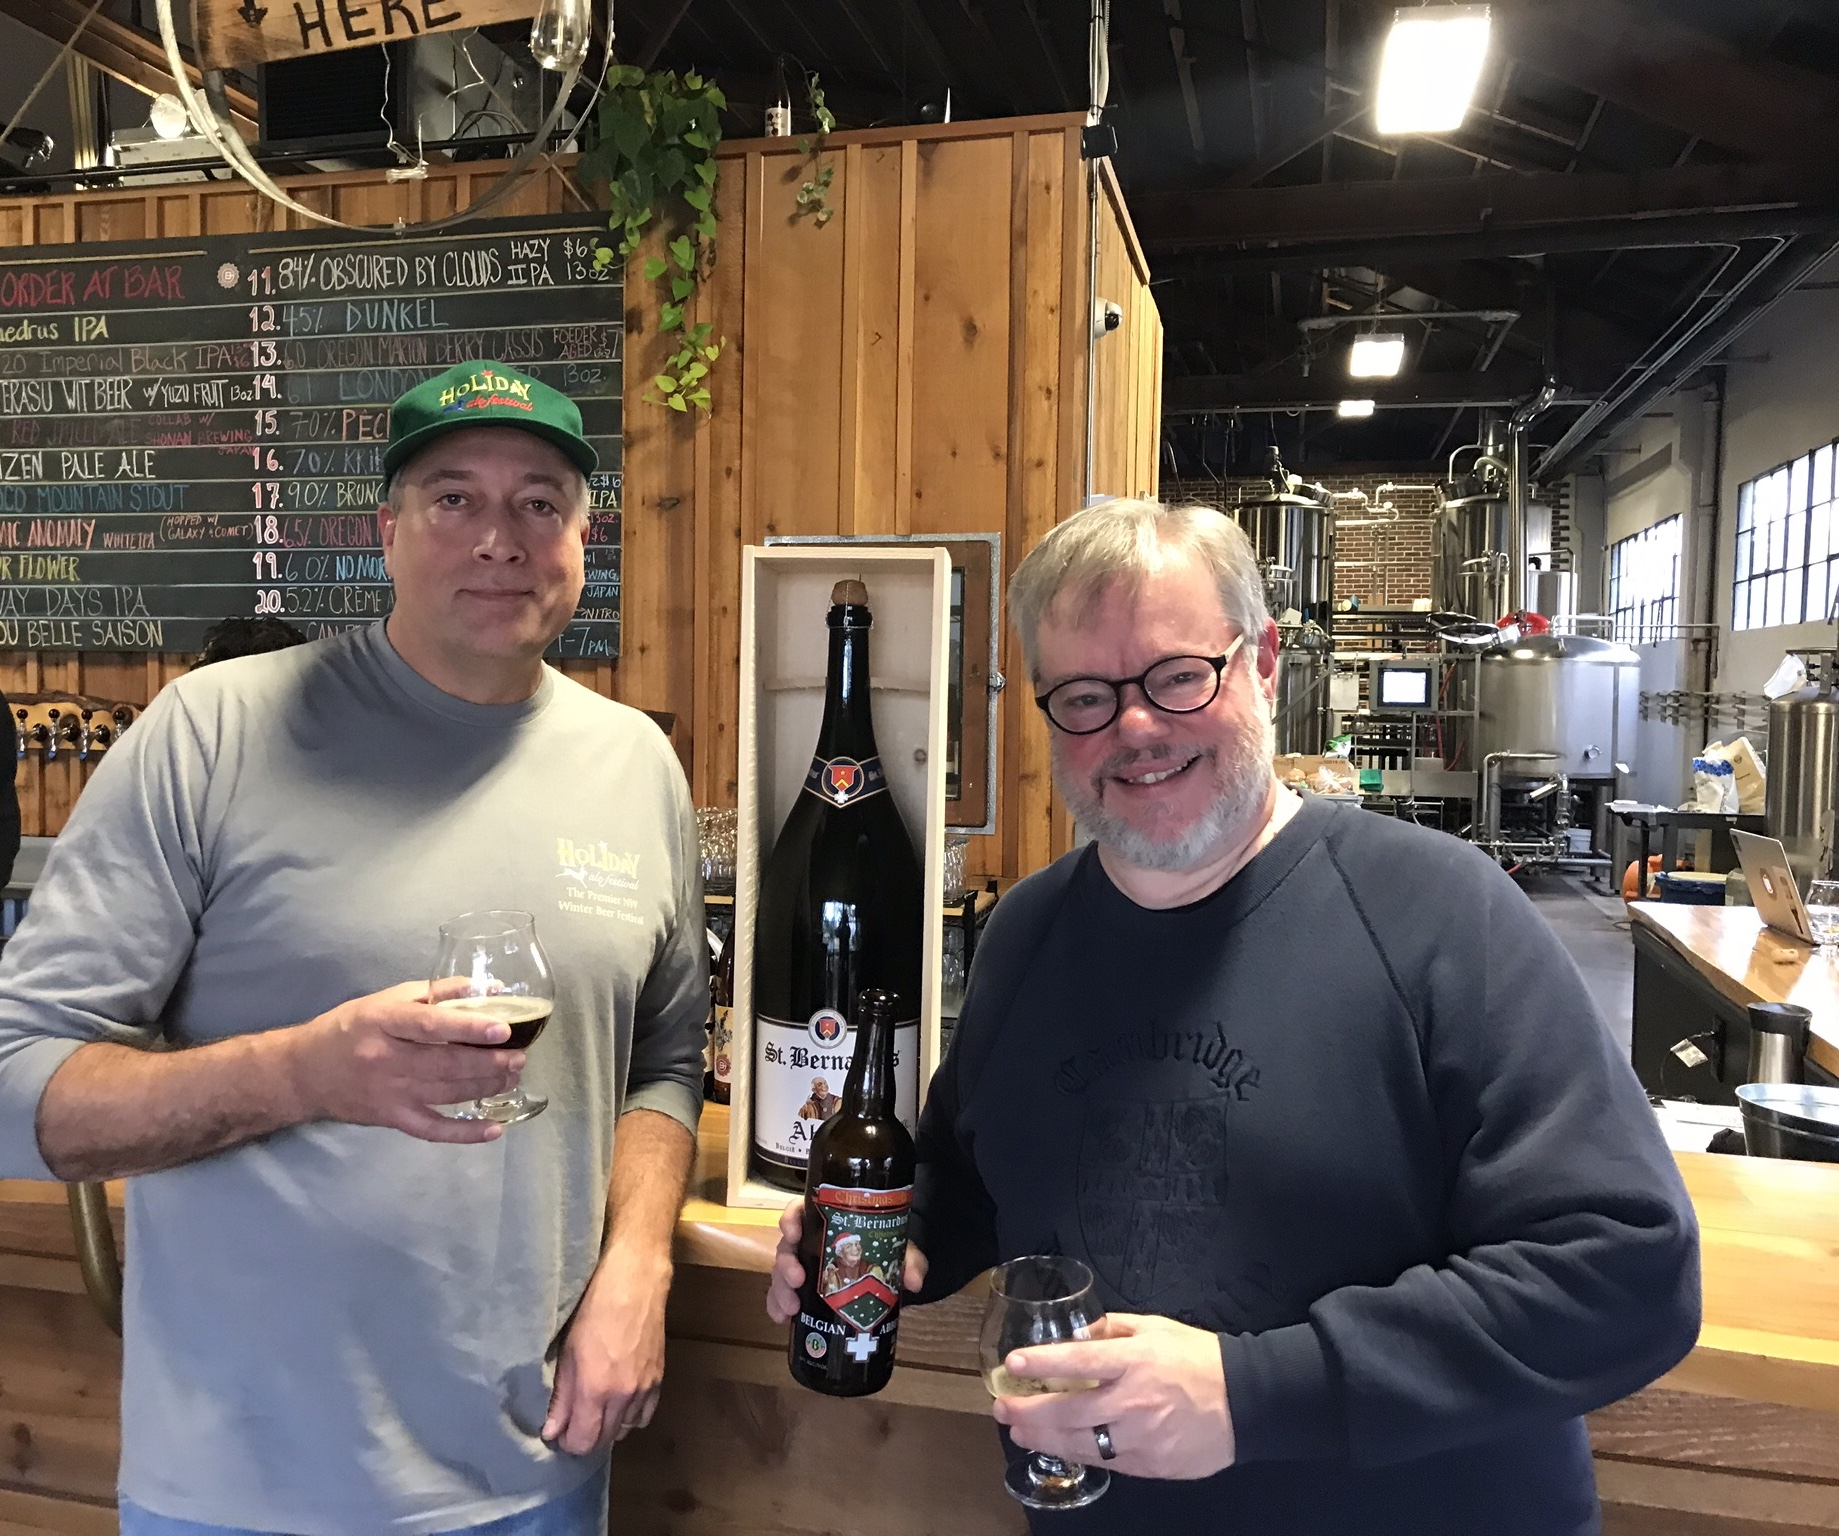 Holiday Ale Festival 101 - Portland Beer Podcast Episode 53